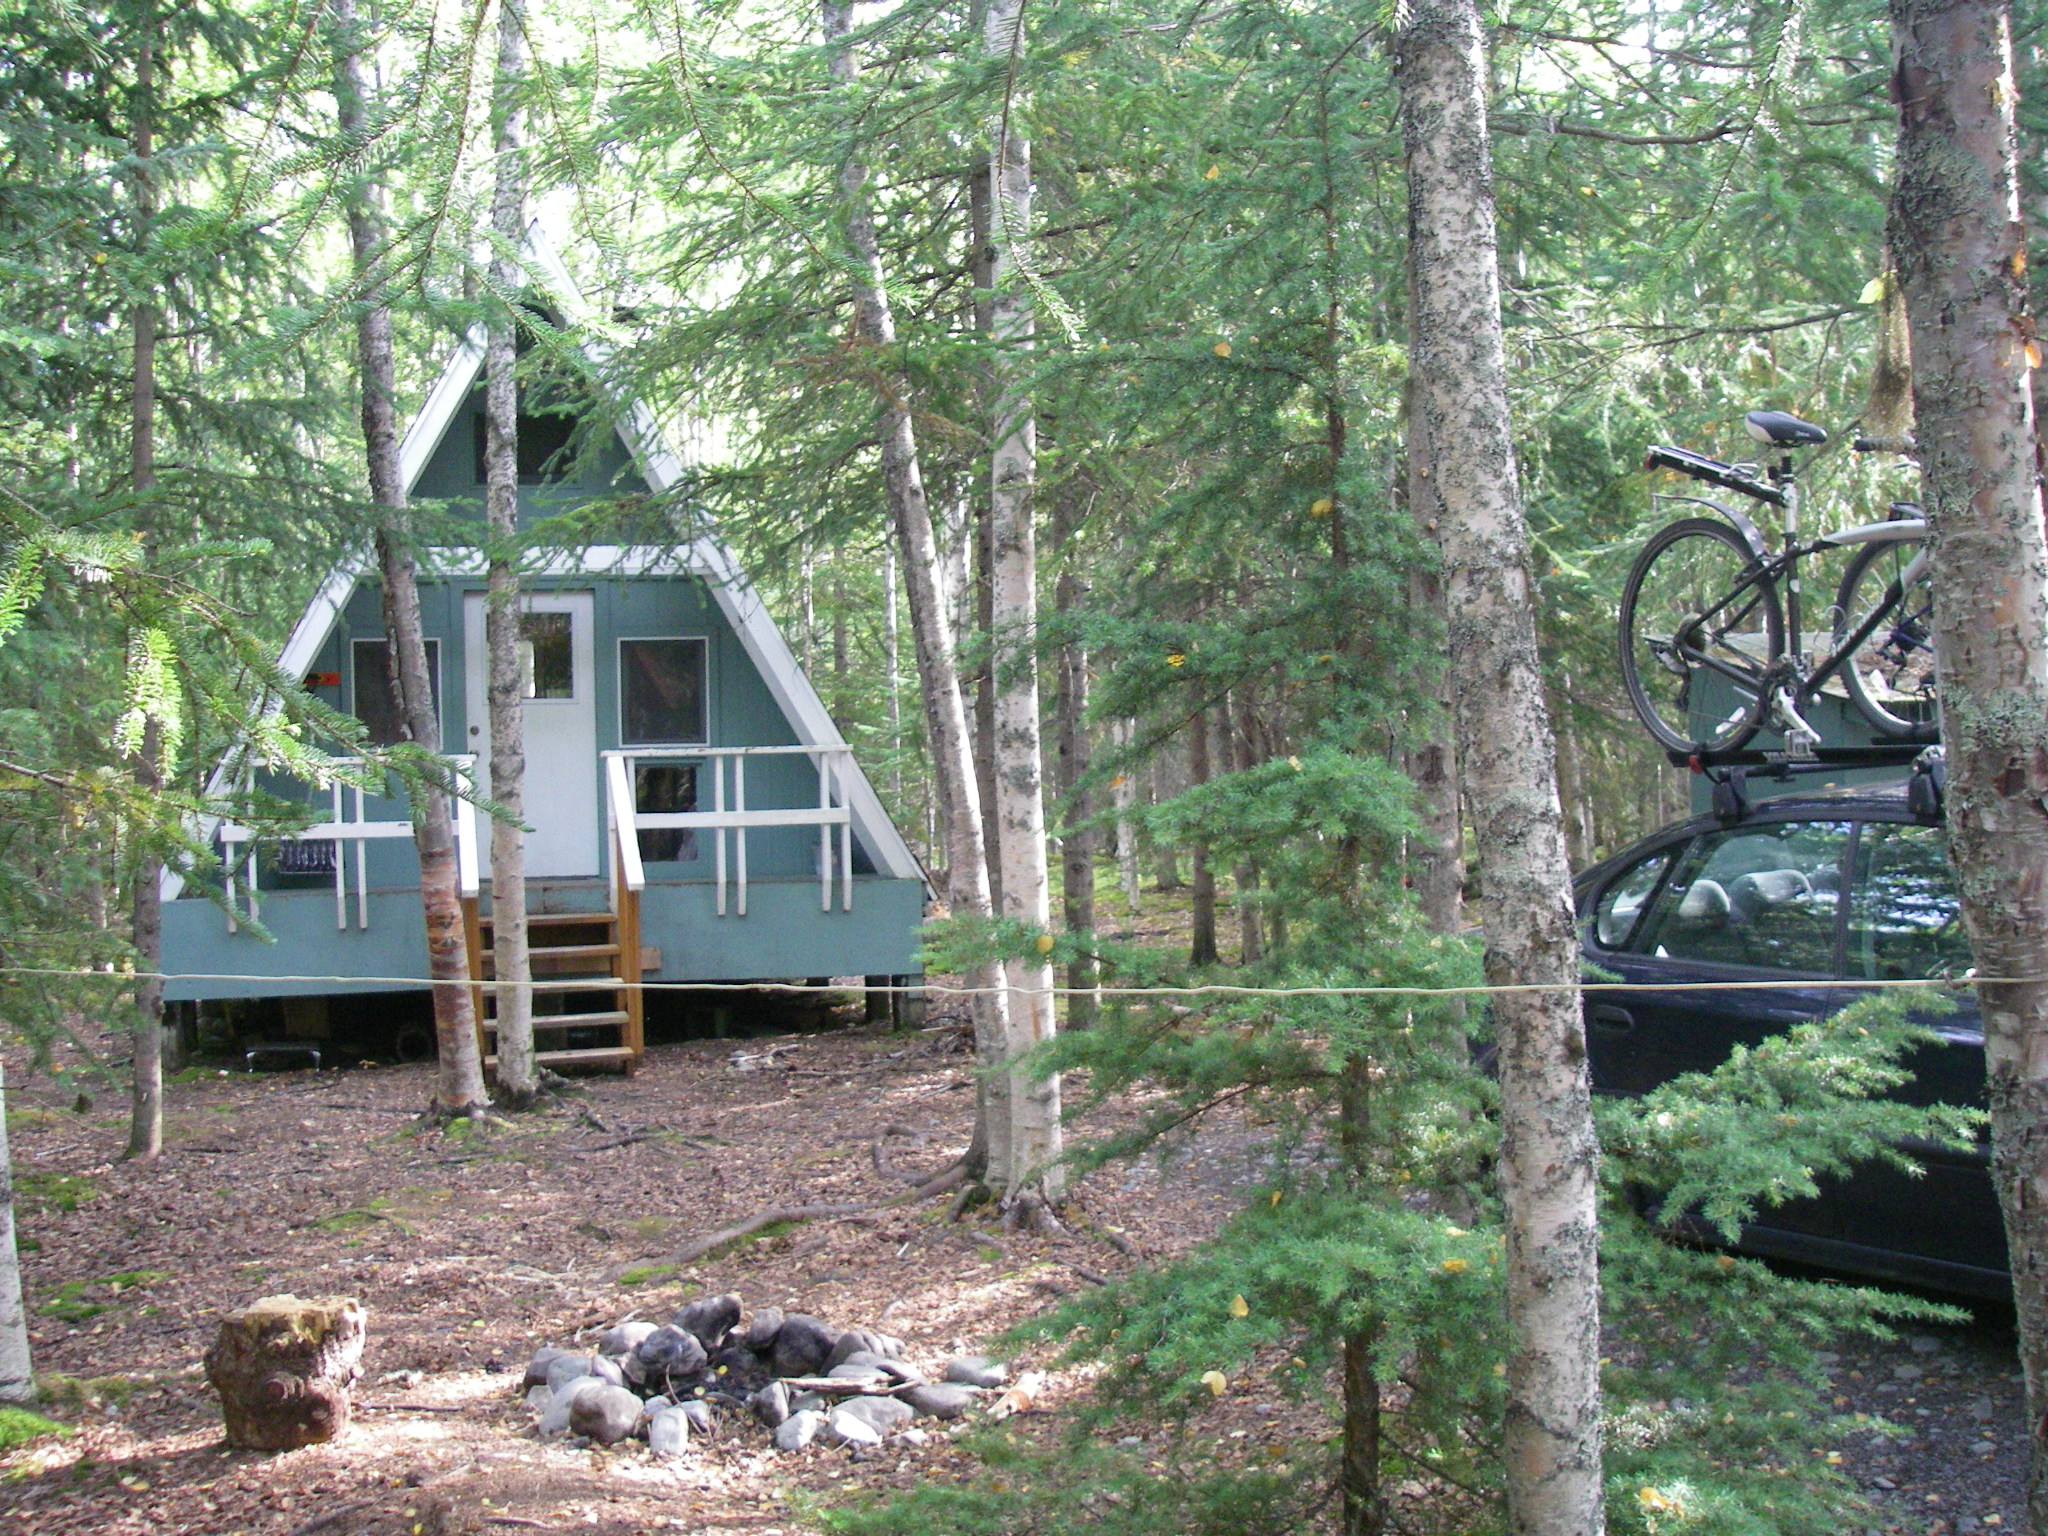 cabin booking hotel ak image village us bluff com rentals on this gulch of cabins alaska gallery clam resort the property